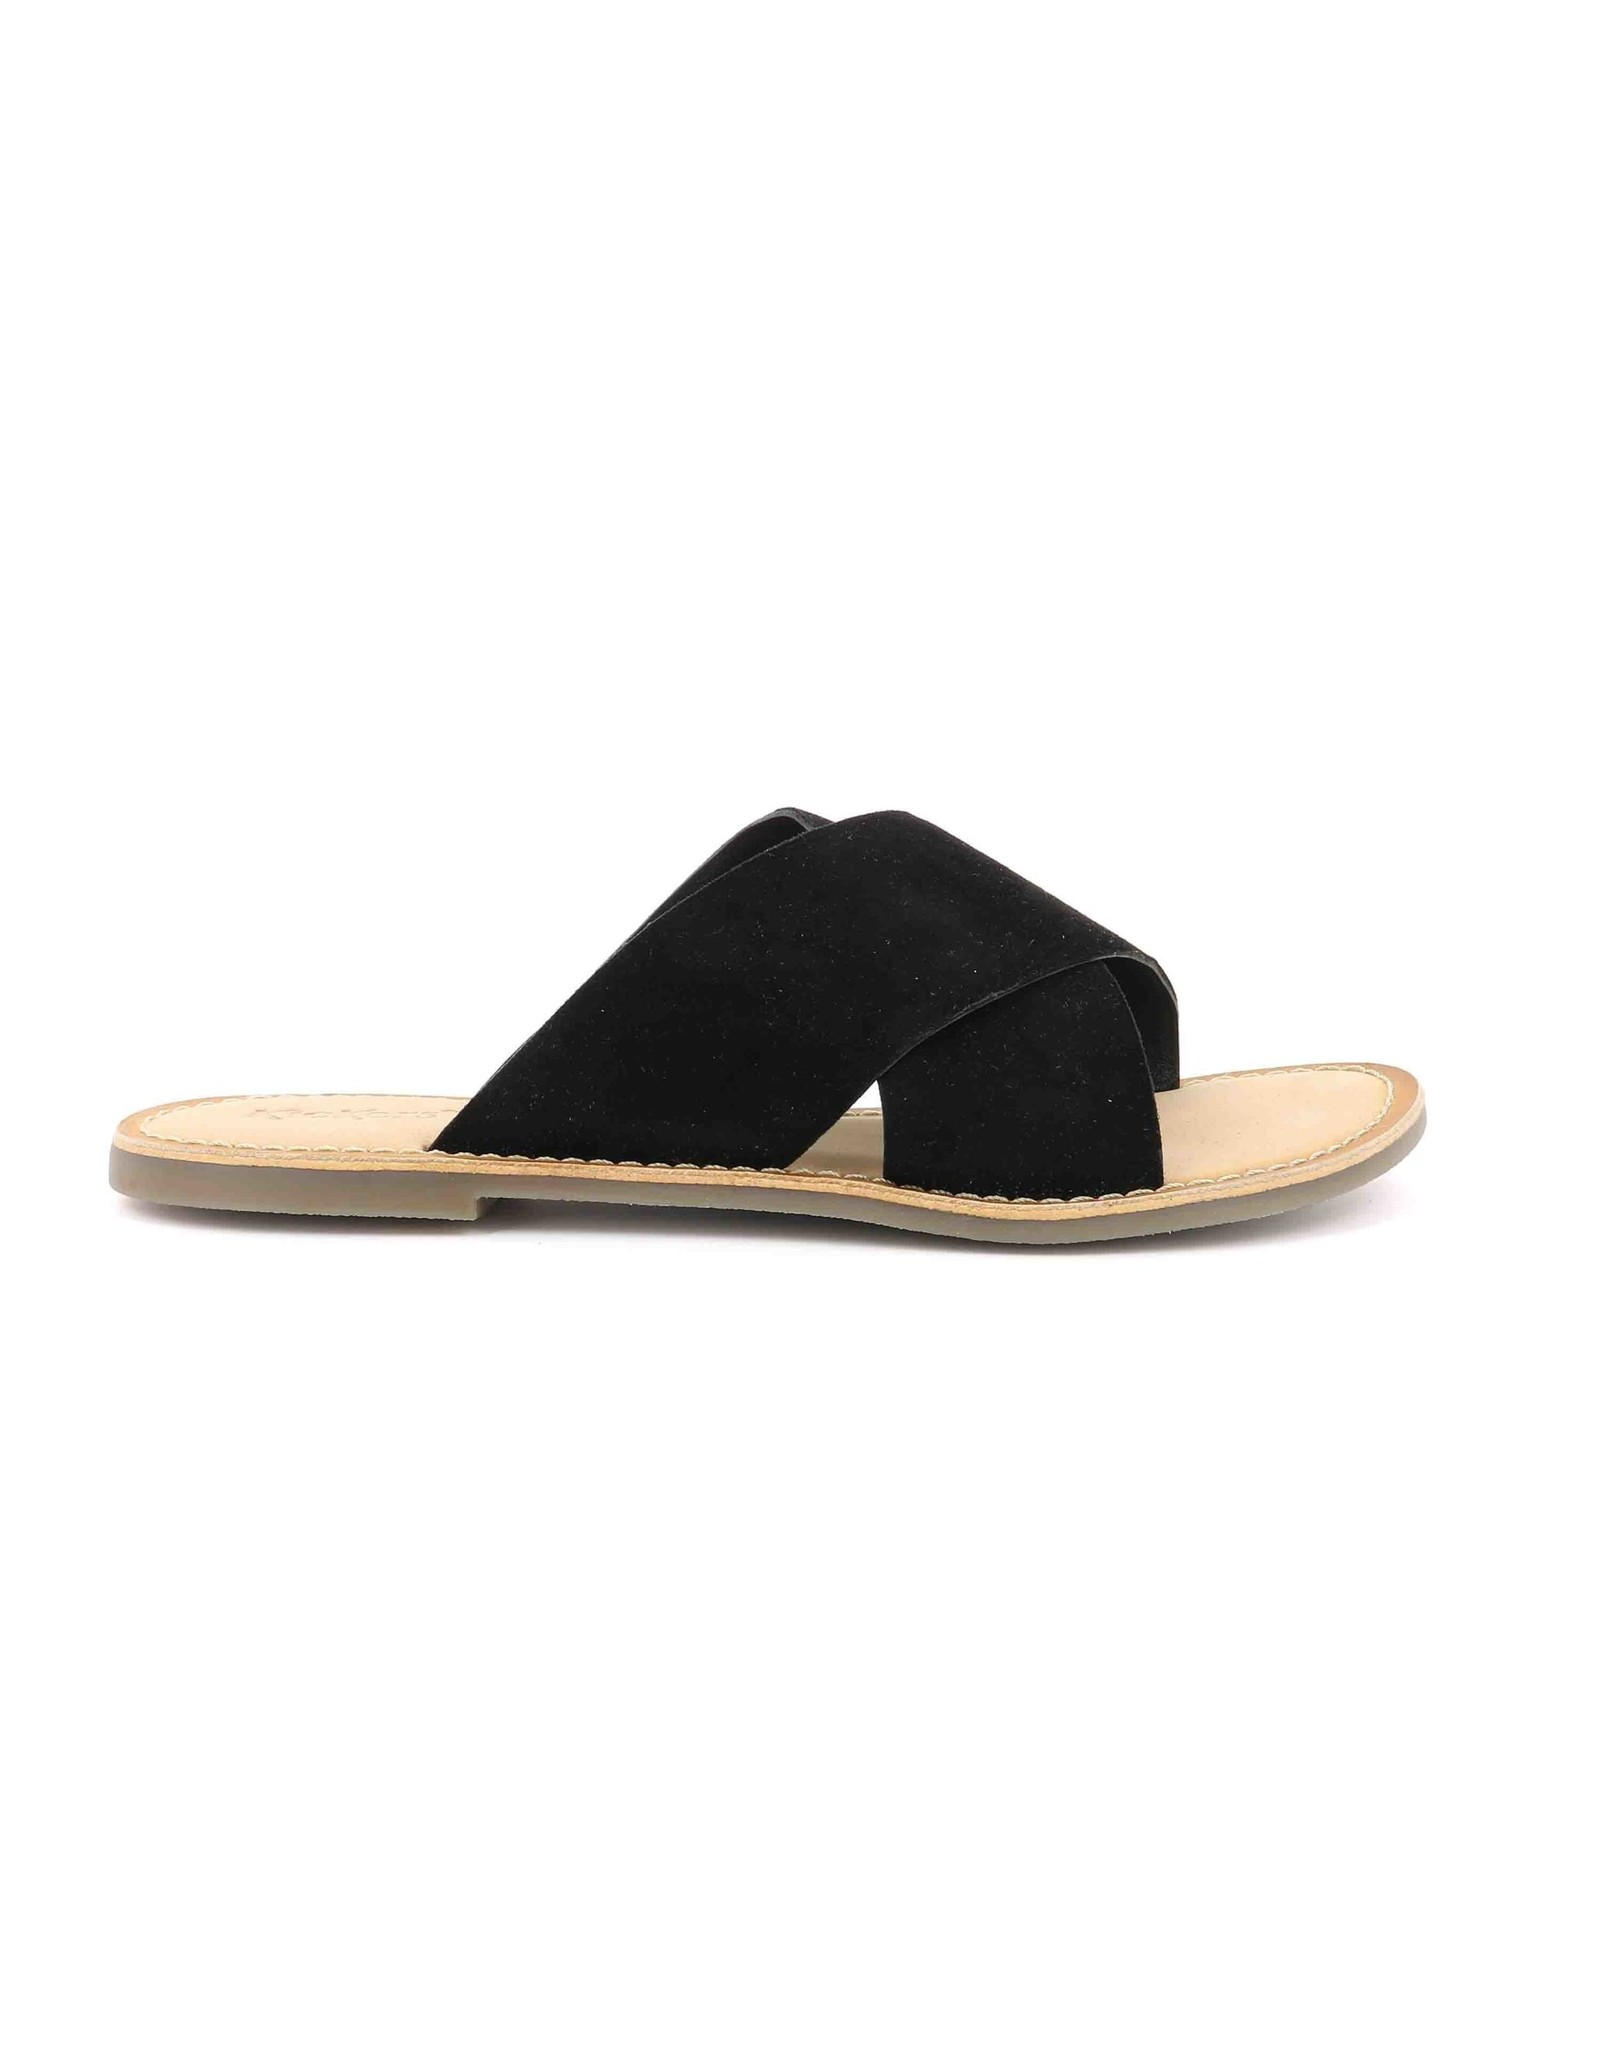 KICKERS DIAZ NOIR K1901B SANDALS 19E700310-50